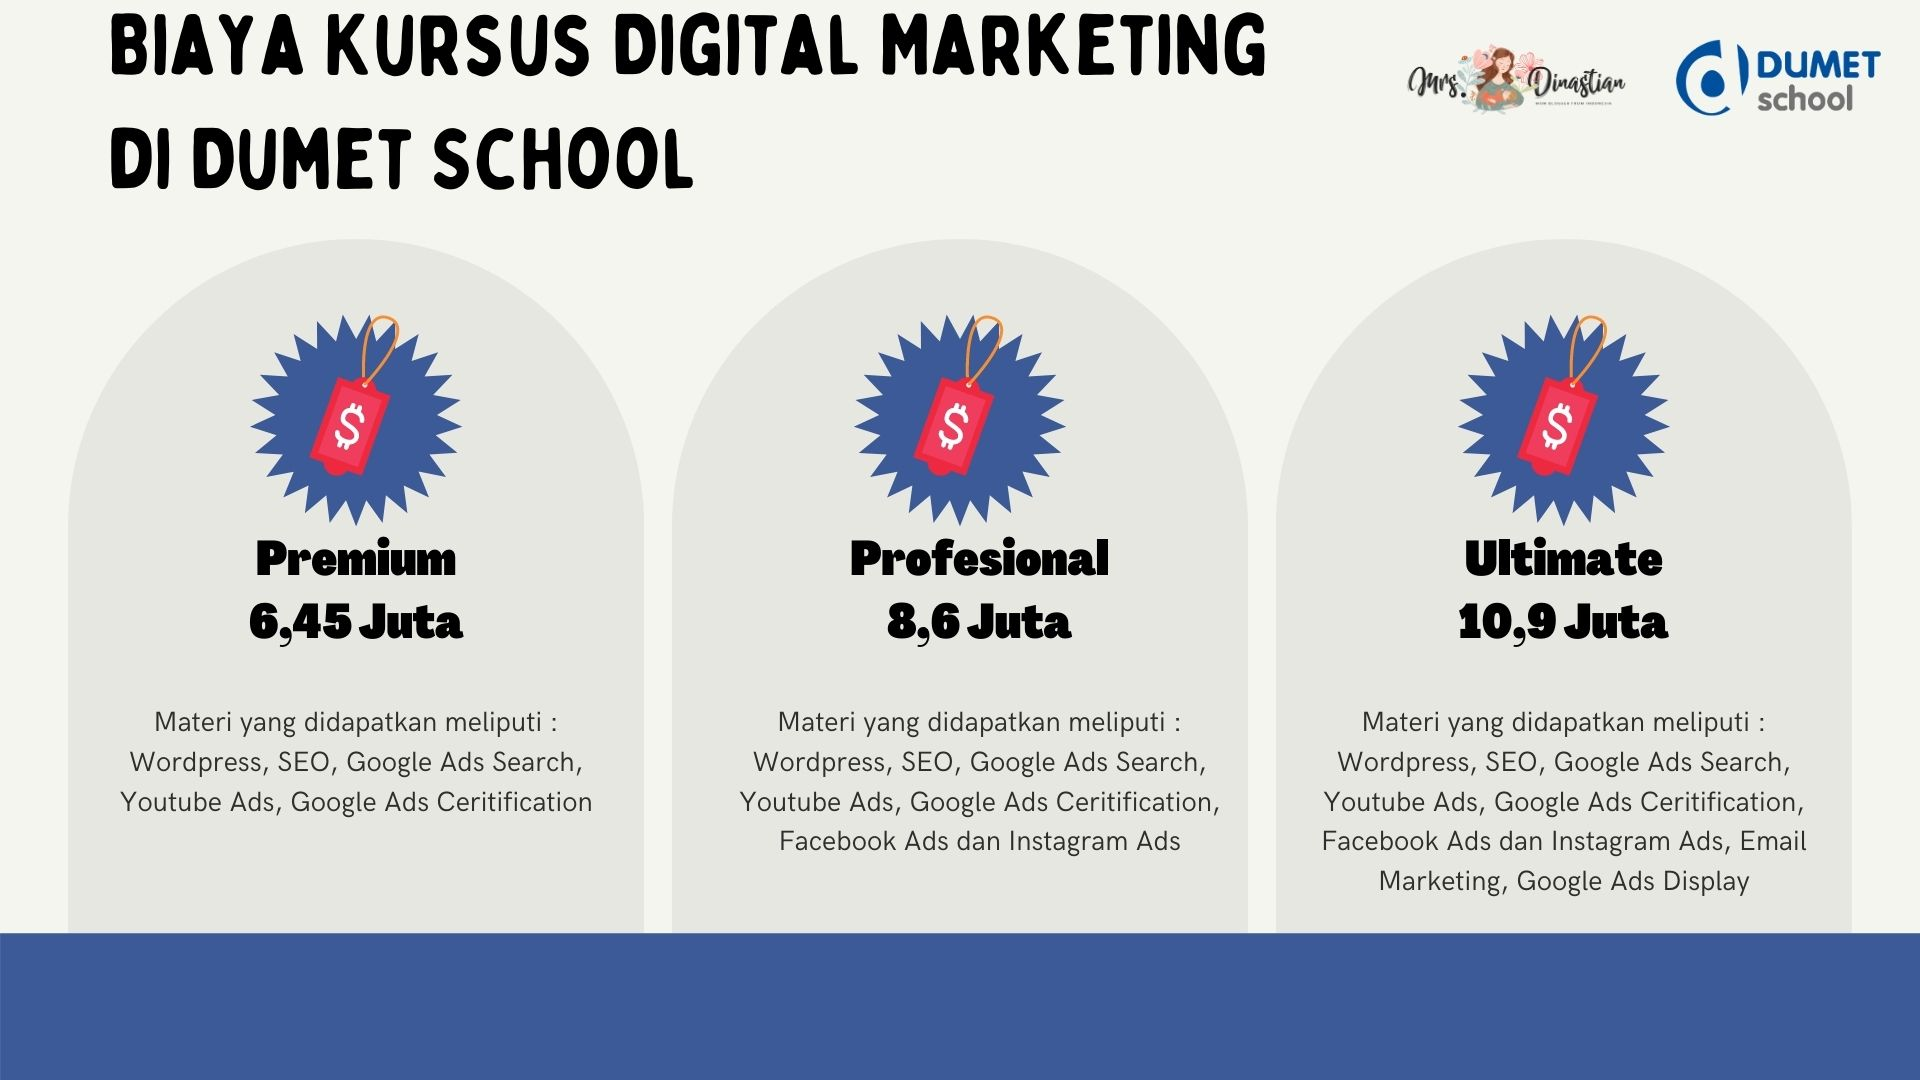 Biaya Kursus Digital Marketing di Dumet School